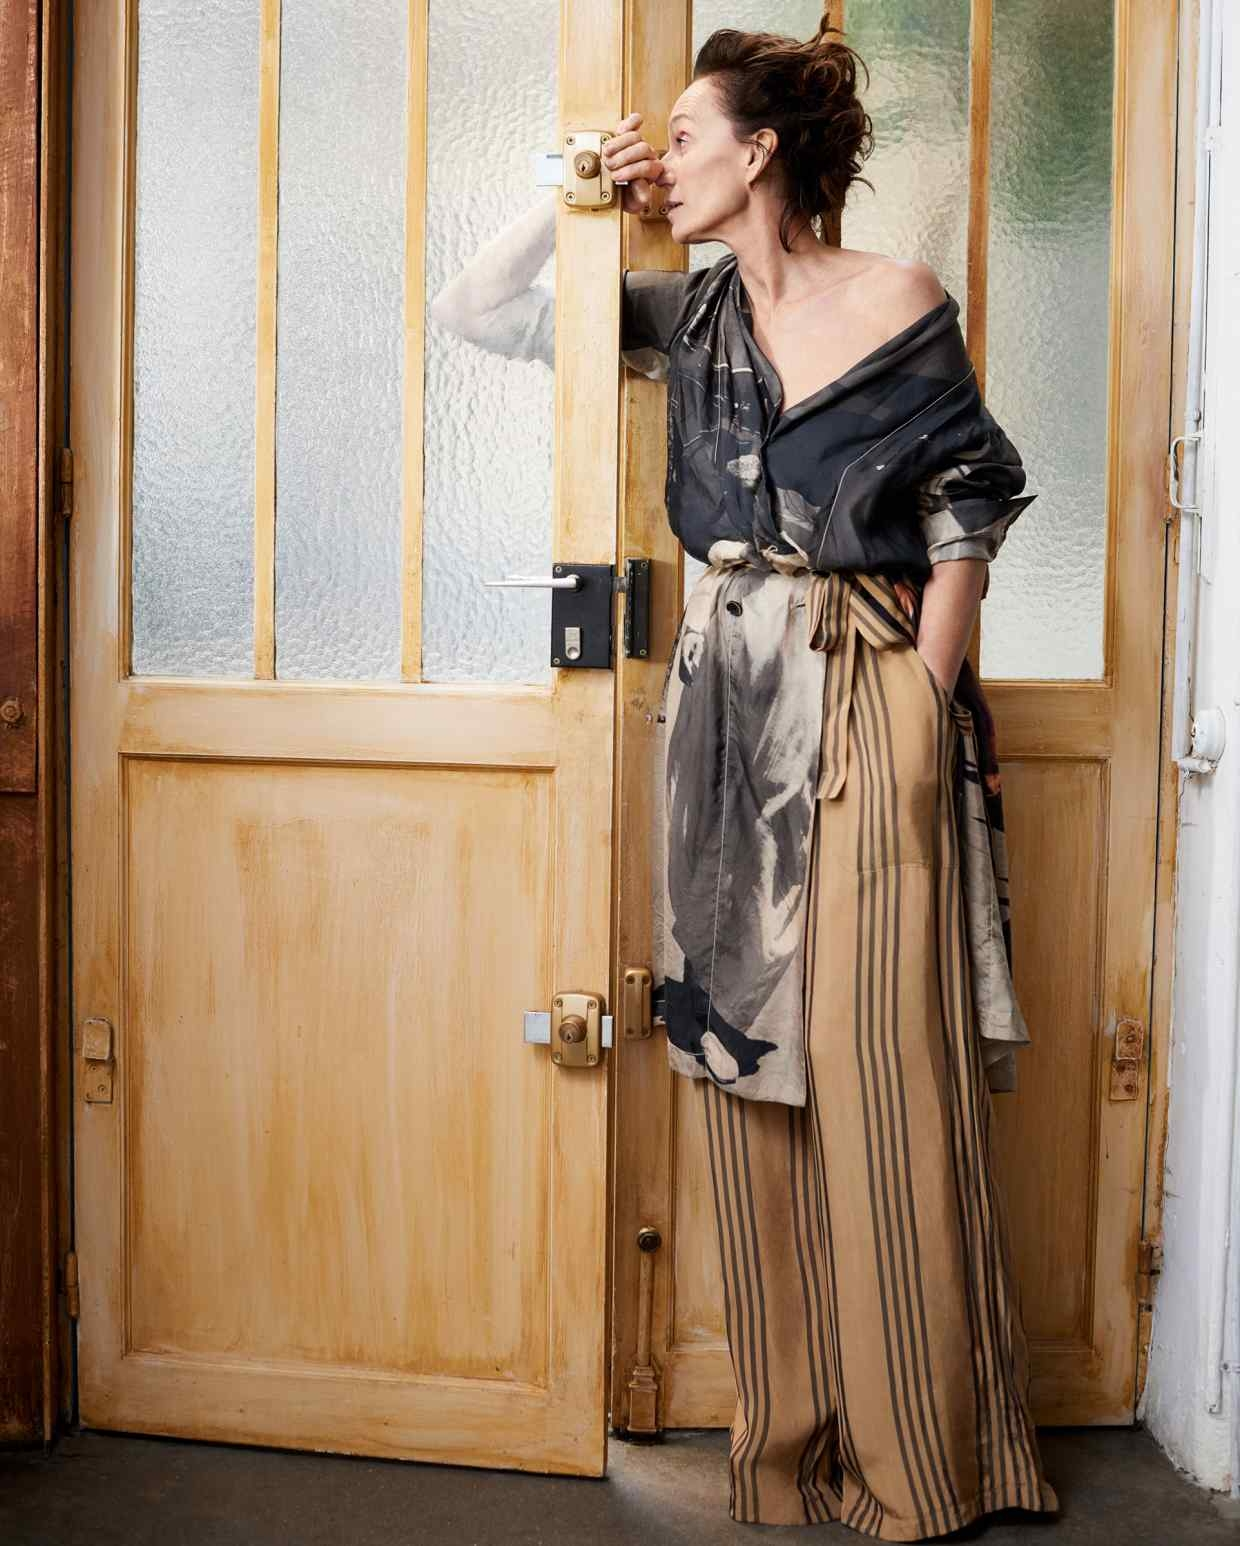 Kristin Scott Thomas-fthtsi-assets-production-ez-images-0-8-6-8-1208680-28-eng-GB-6